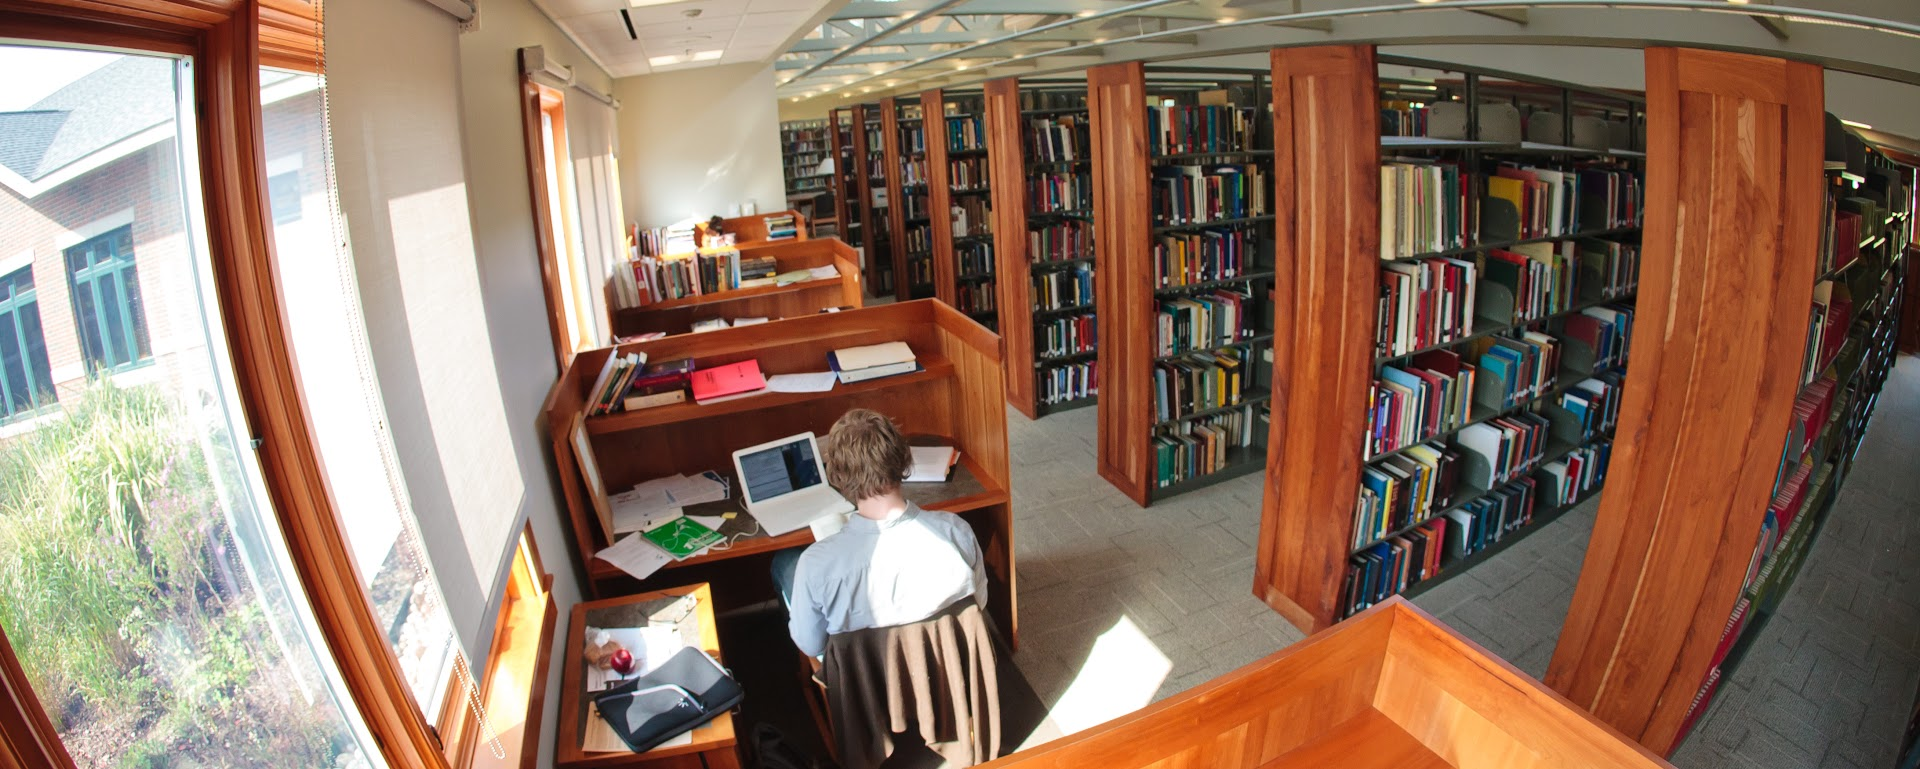 A student works in a library study carrel.